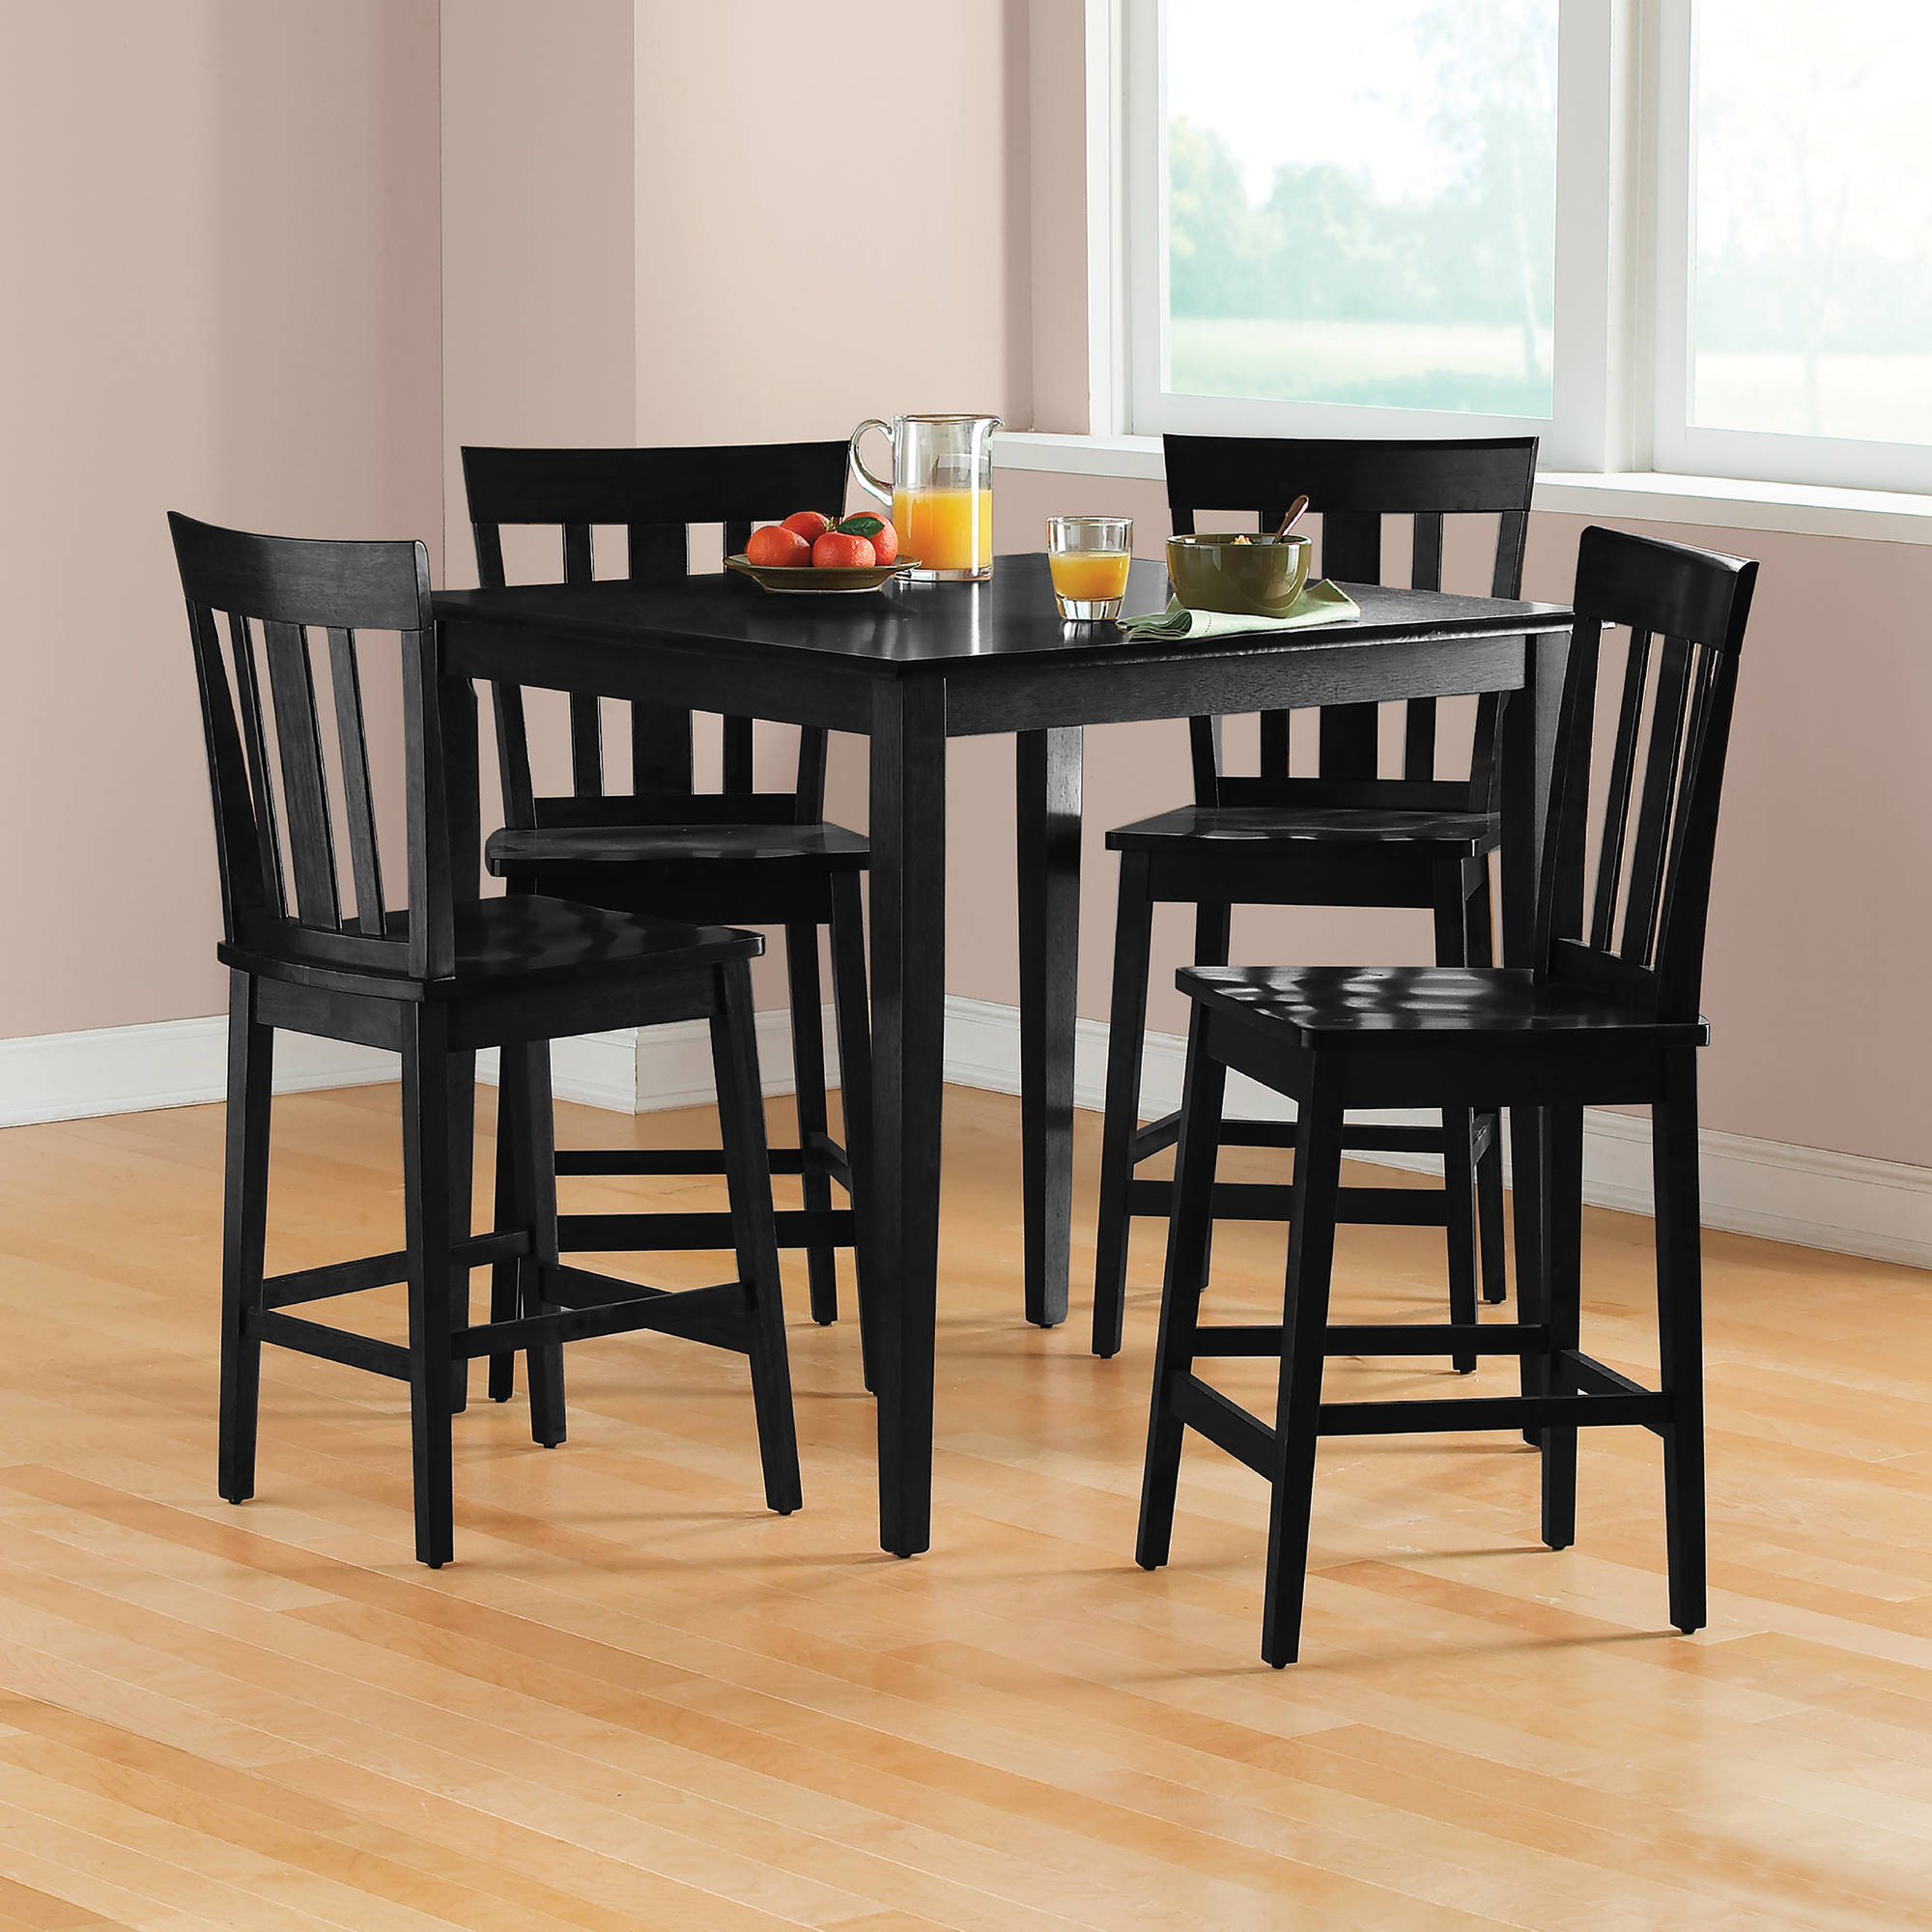 Recent Target Marketing Systems 3 Piece Breakfast Nook Dining Set Inside Crownover 3 Piece Bar Table Sets (View 16 of 20)